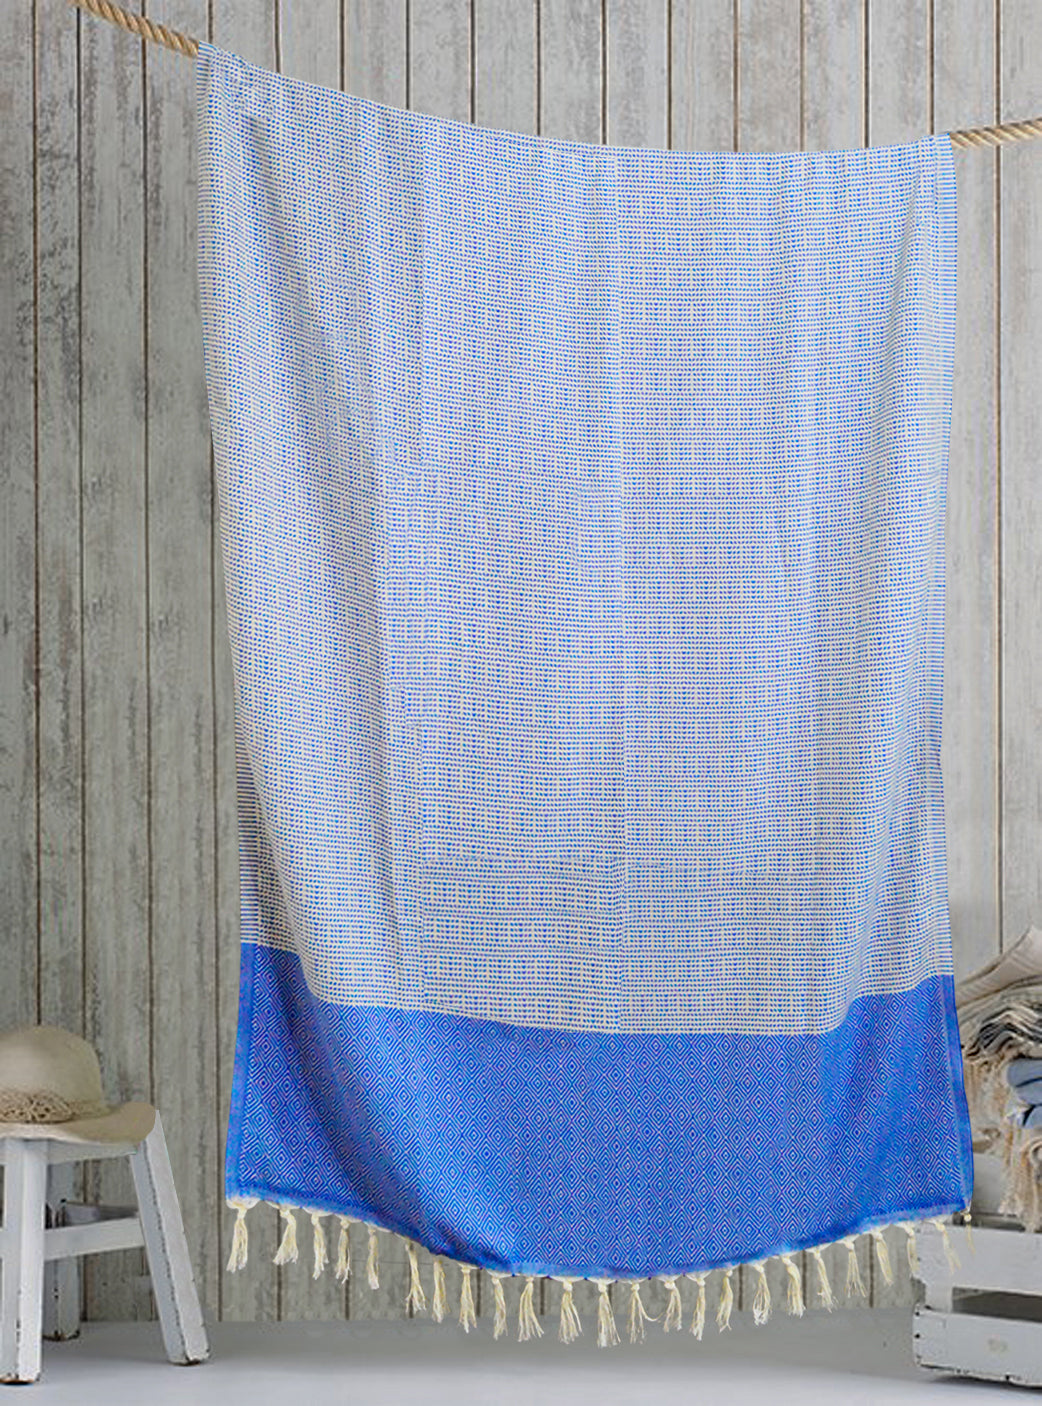 Blue/White Turkish bath towel, pure cotton, lightweight, woven by hand, rhombus design and loose fringes at both ends.